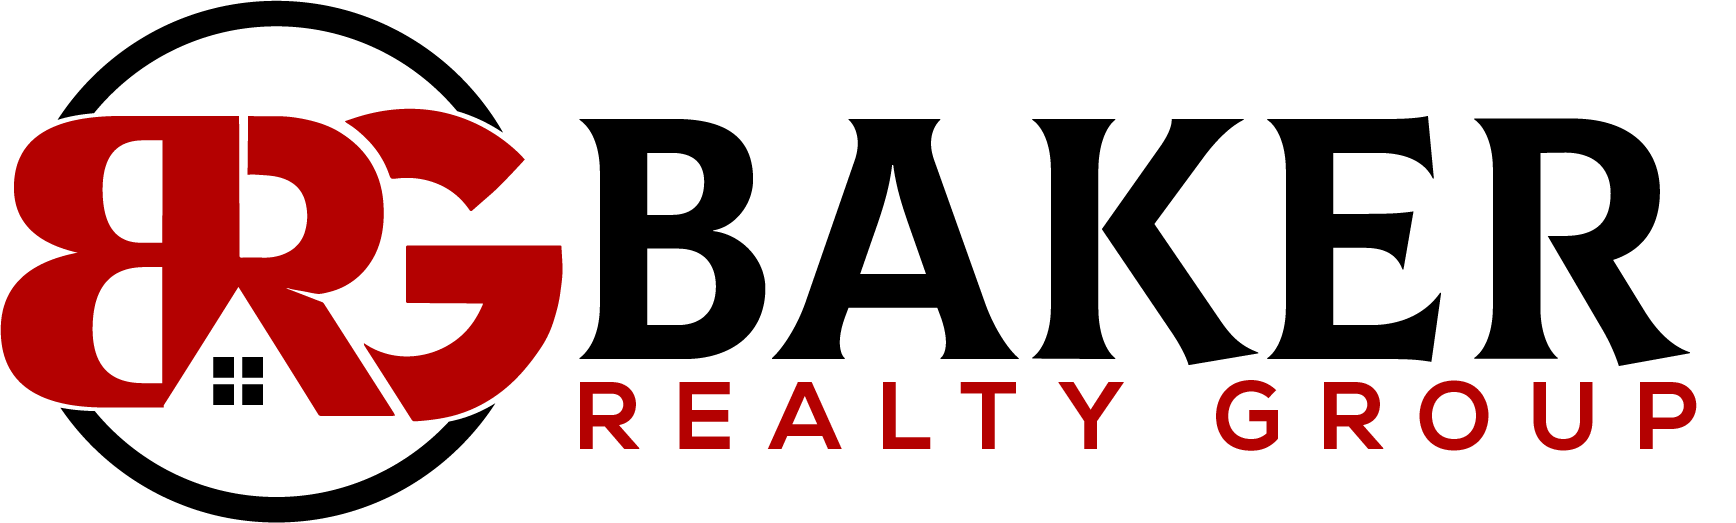 Baker Realty Group ~ Keller Williams Realty logo